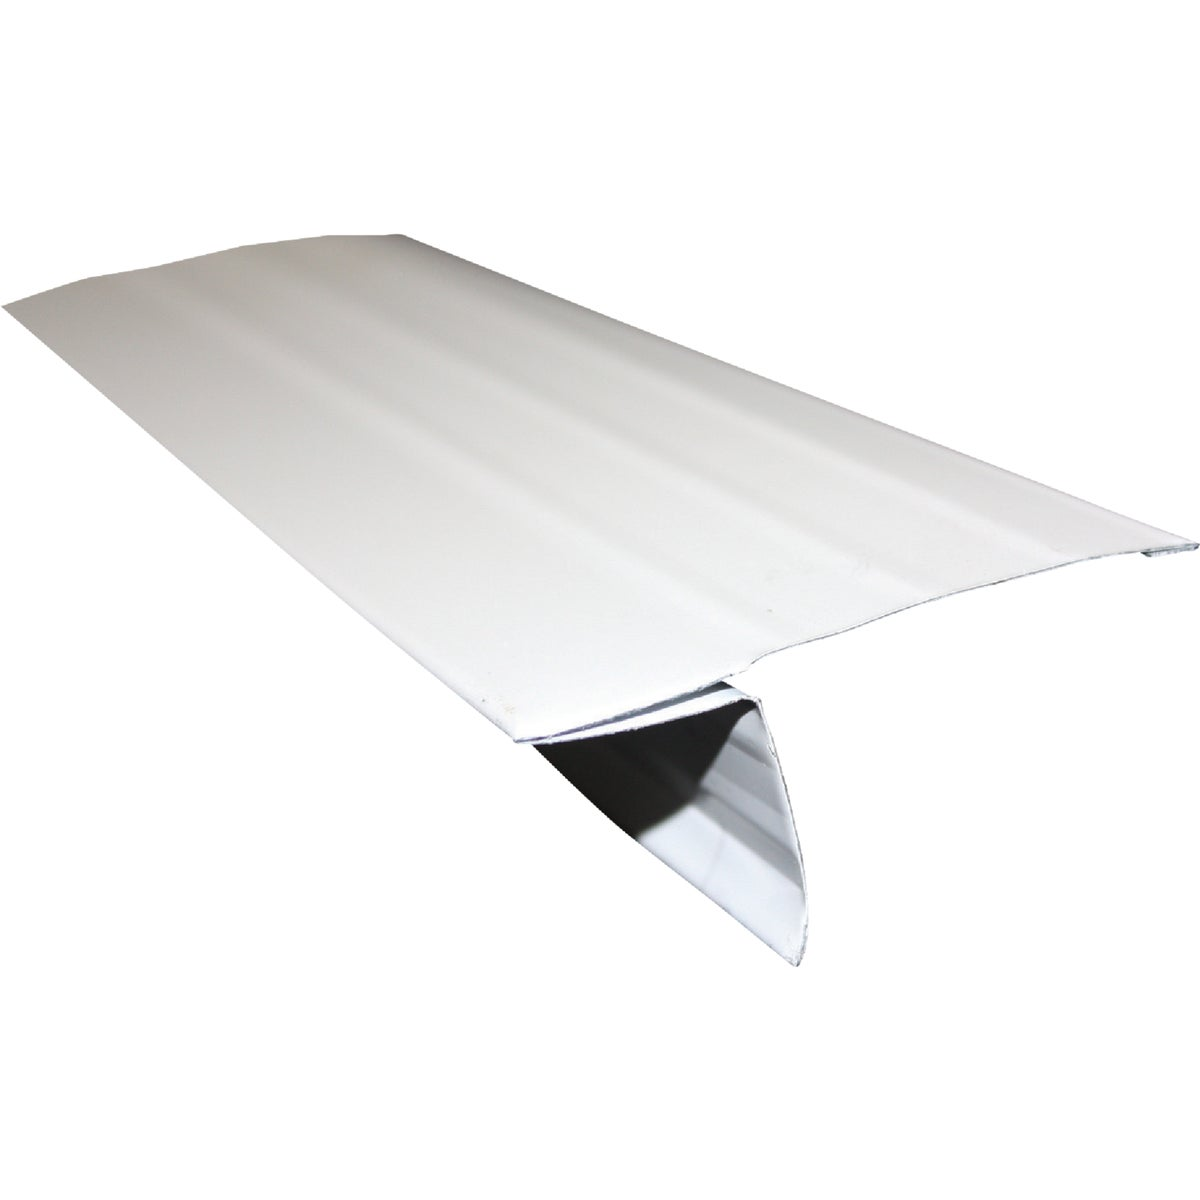 "5""STYLE D BRN ROOF EDGE - 32415-BN56 by Klauer Mfg Co"